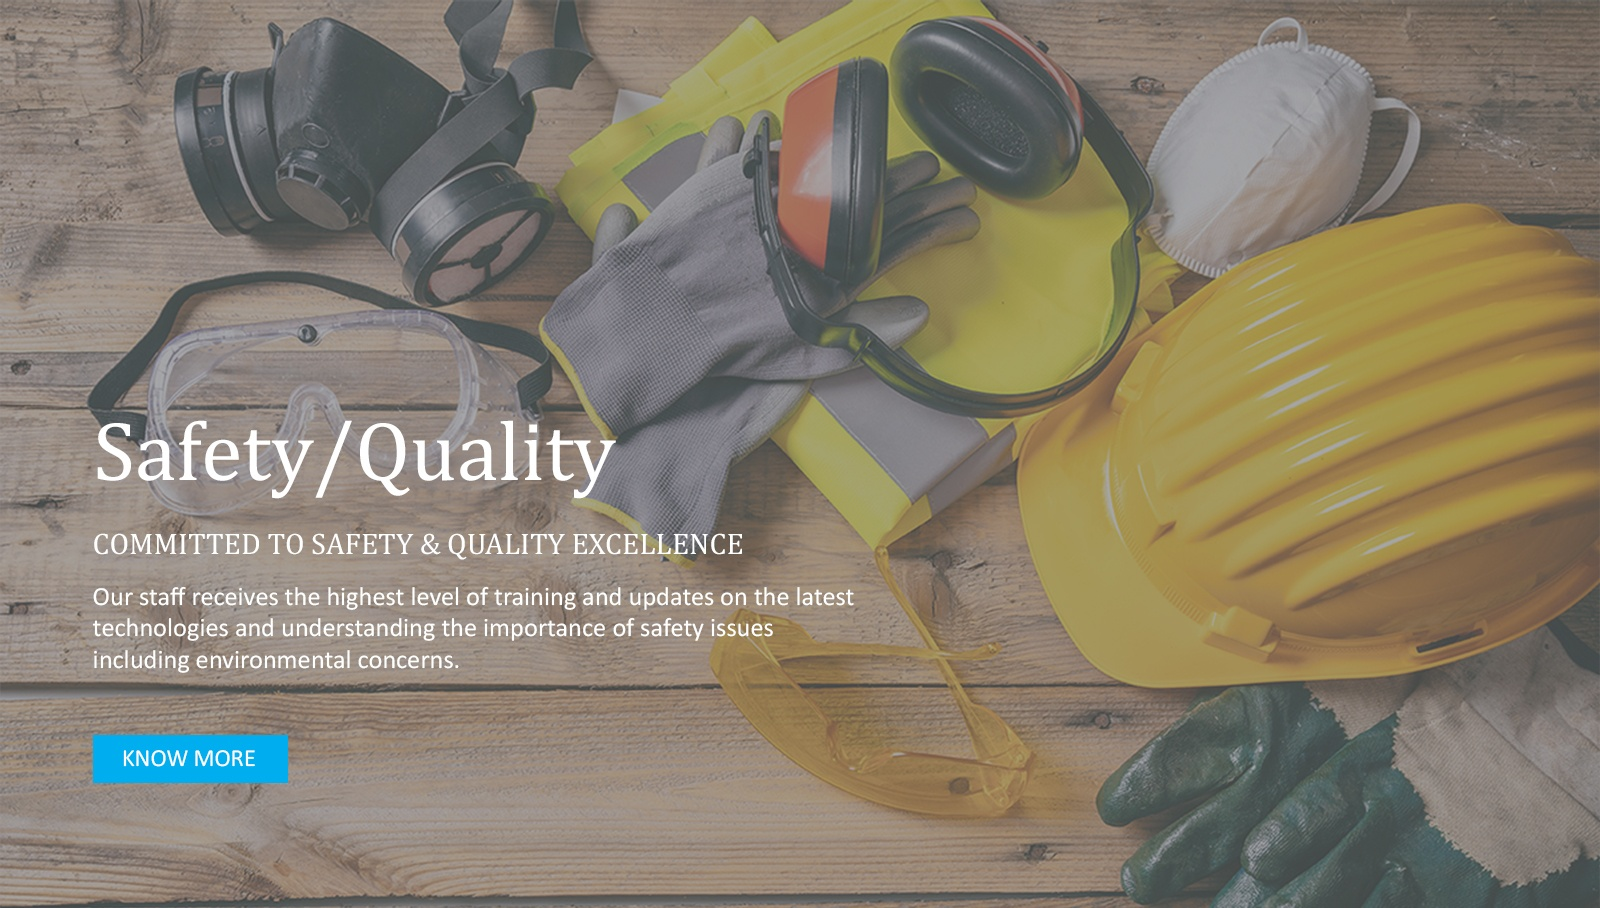 Safety Quality Home